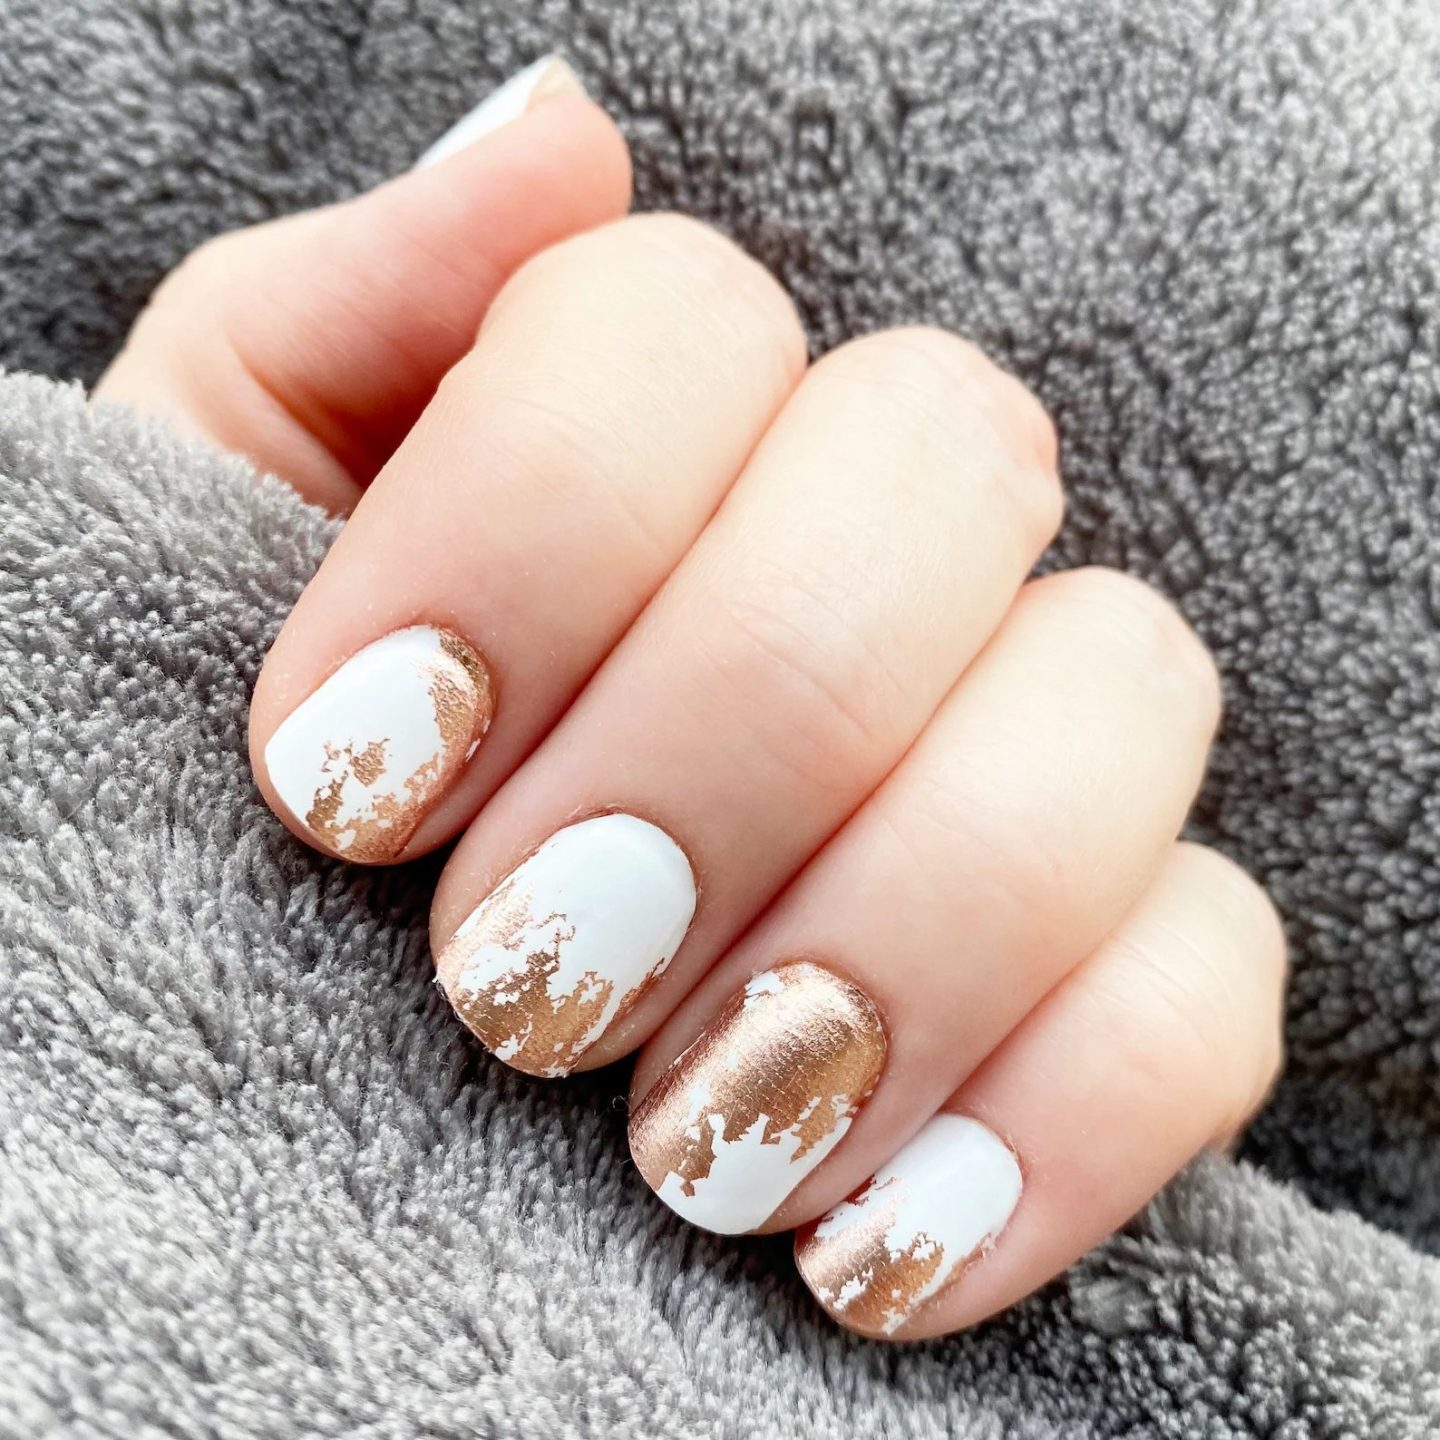 Short white and rose gold nails